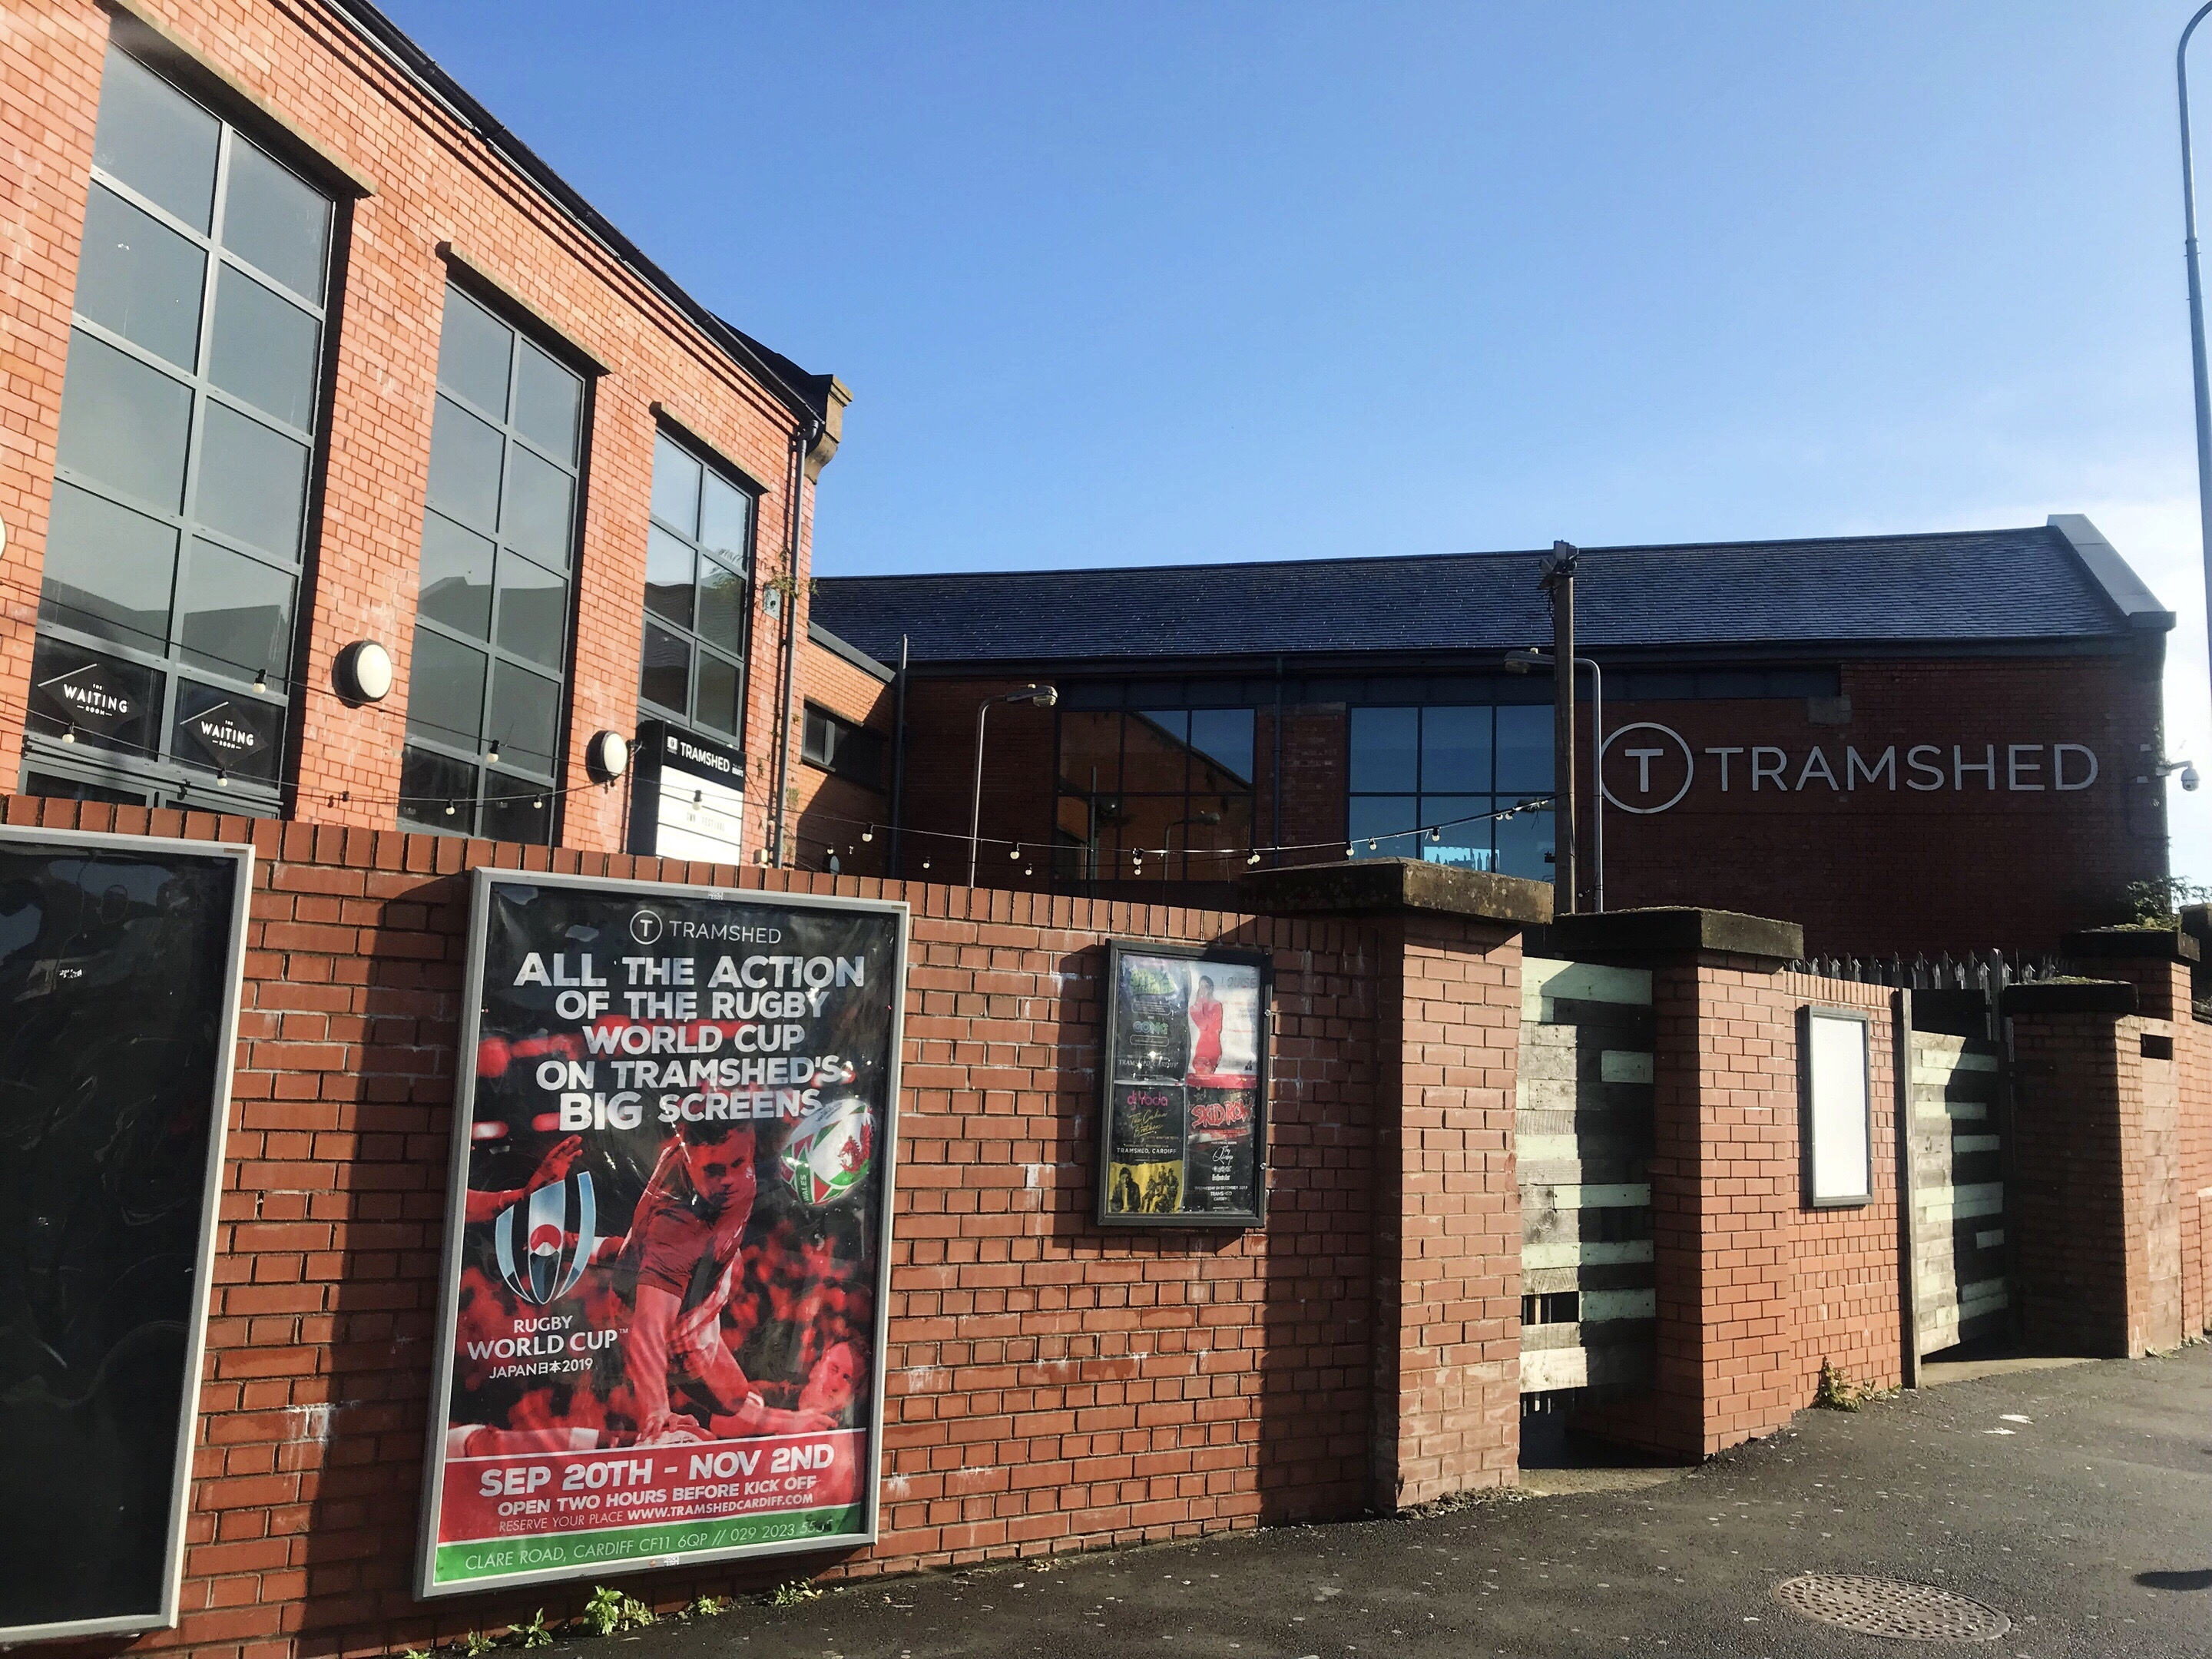 Tramshed, the music venue in Cardiff